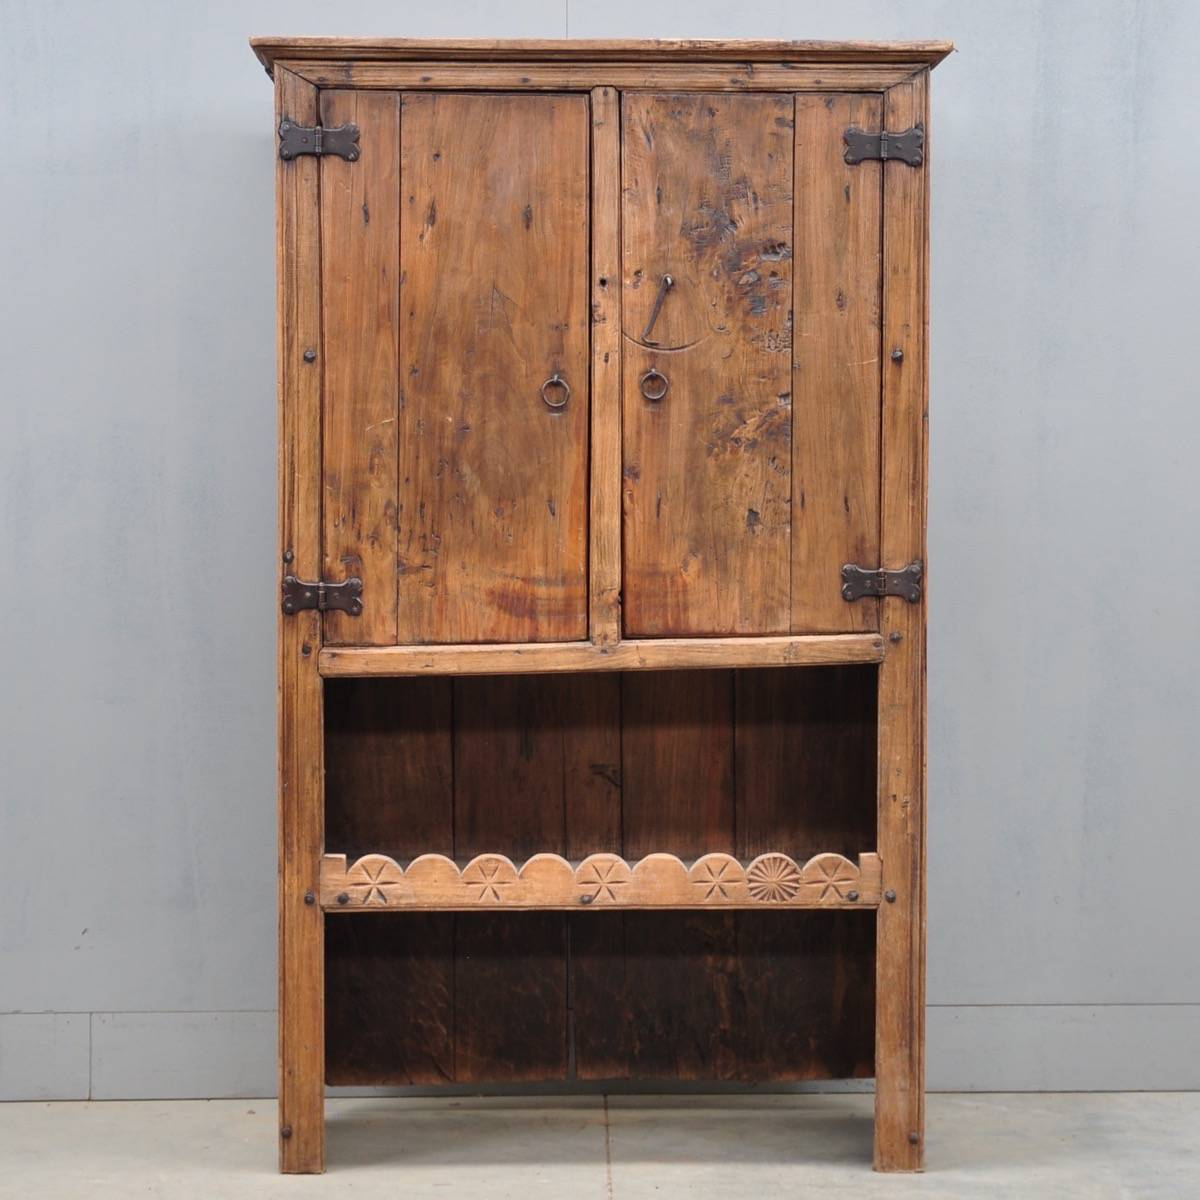 Rustic Spanish cupboard | De Grande Antique Furniture - Spanish Cupboard De Grande Antique Furniture